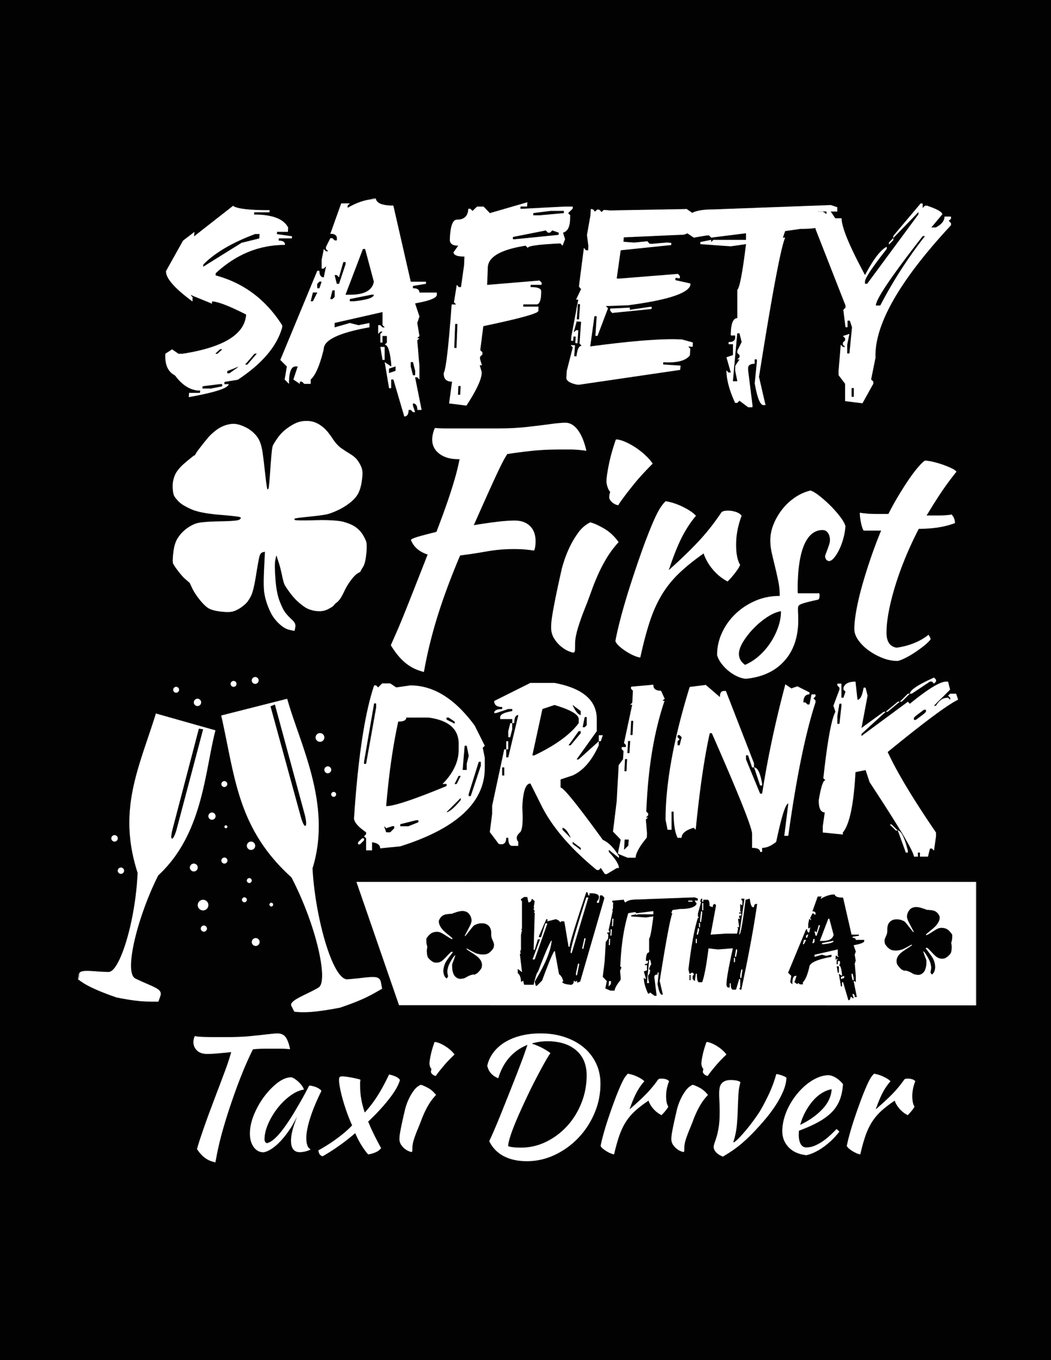 Safety First Drink With A Taxi Driver: St. Patrick's Day Journal Notebook, Blank Lined Notebook, 8.5 x 11 (Journals To Write In) V2